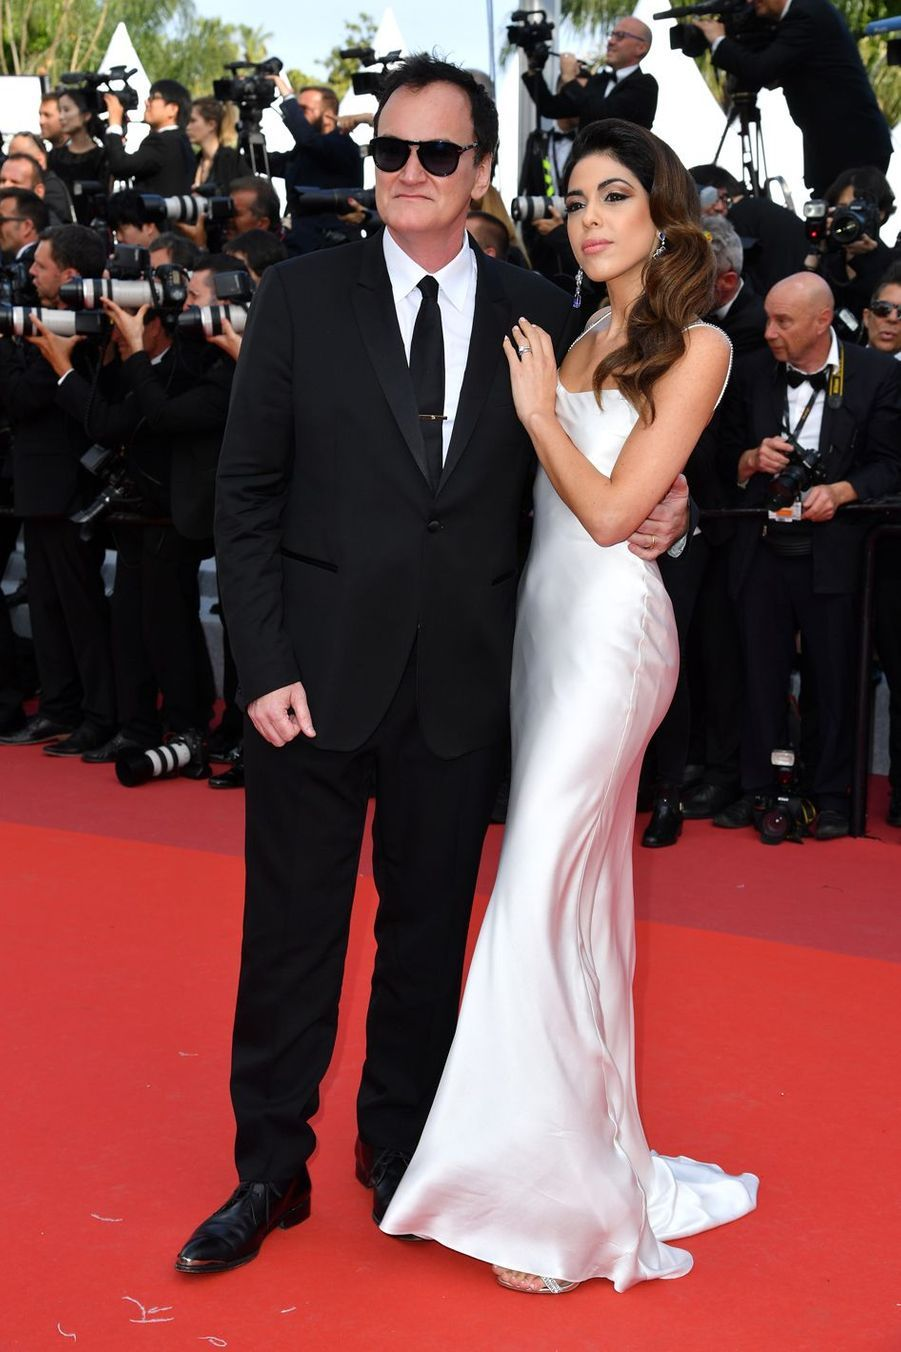 Quentin Tarantino et son épouse Daniella lors de la montée des marches du film «Once Upon A Time In Hollywood» à Cannes le 21 mai 2019